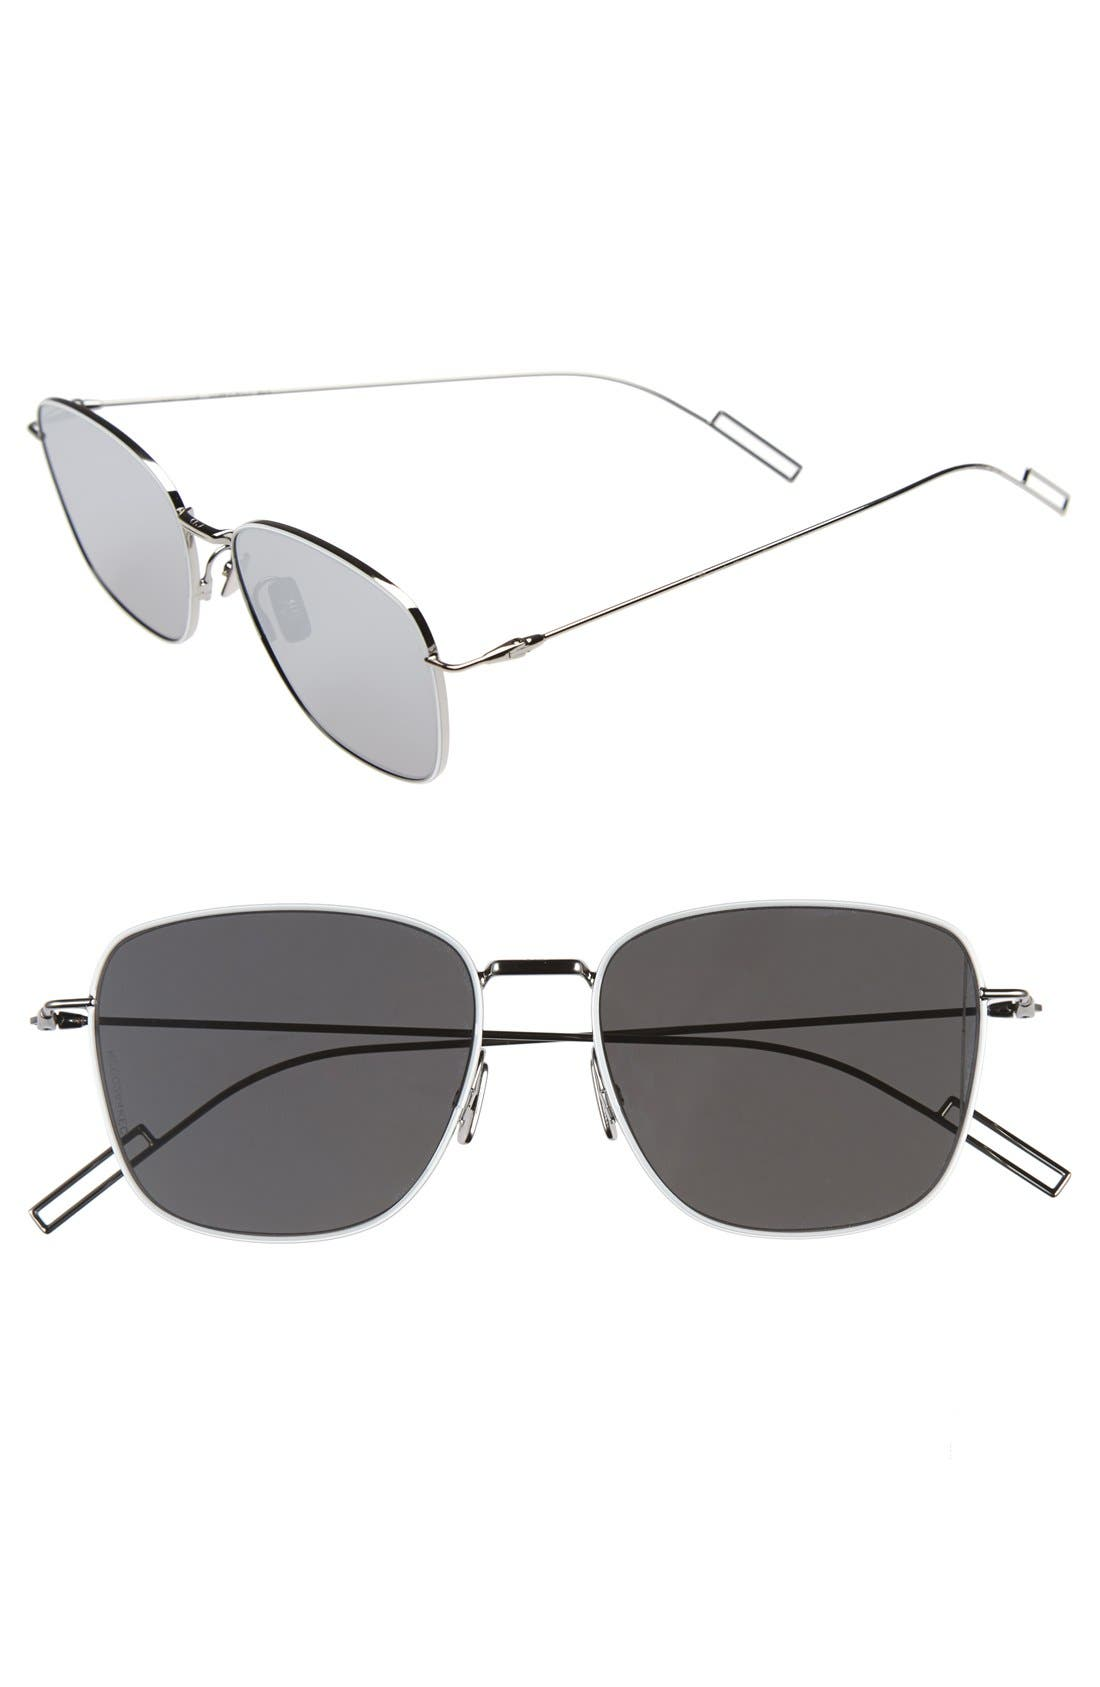 Main Image - Dior Homme 'Composit 1.1S' 54mm Metal Sunglasses